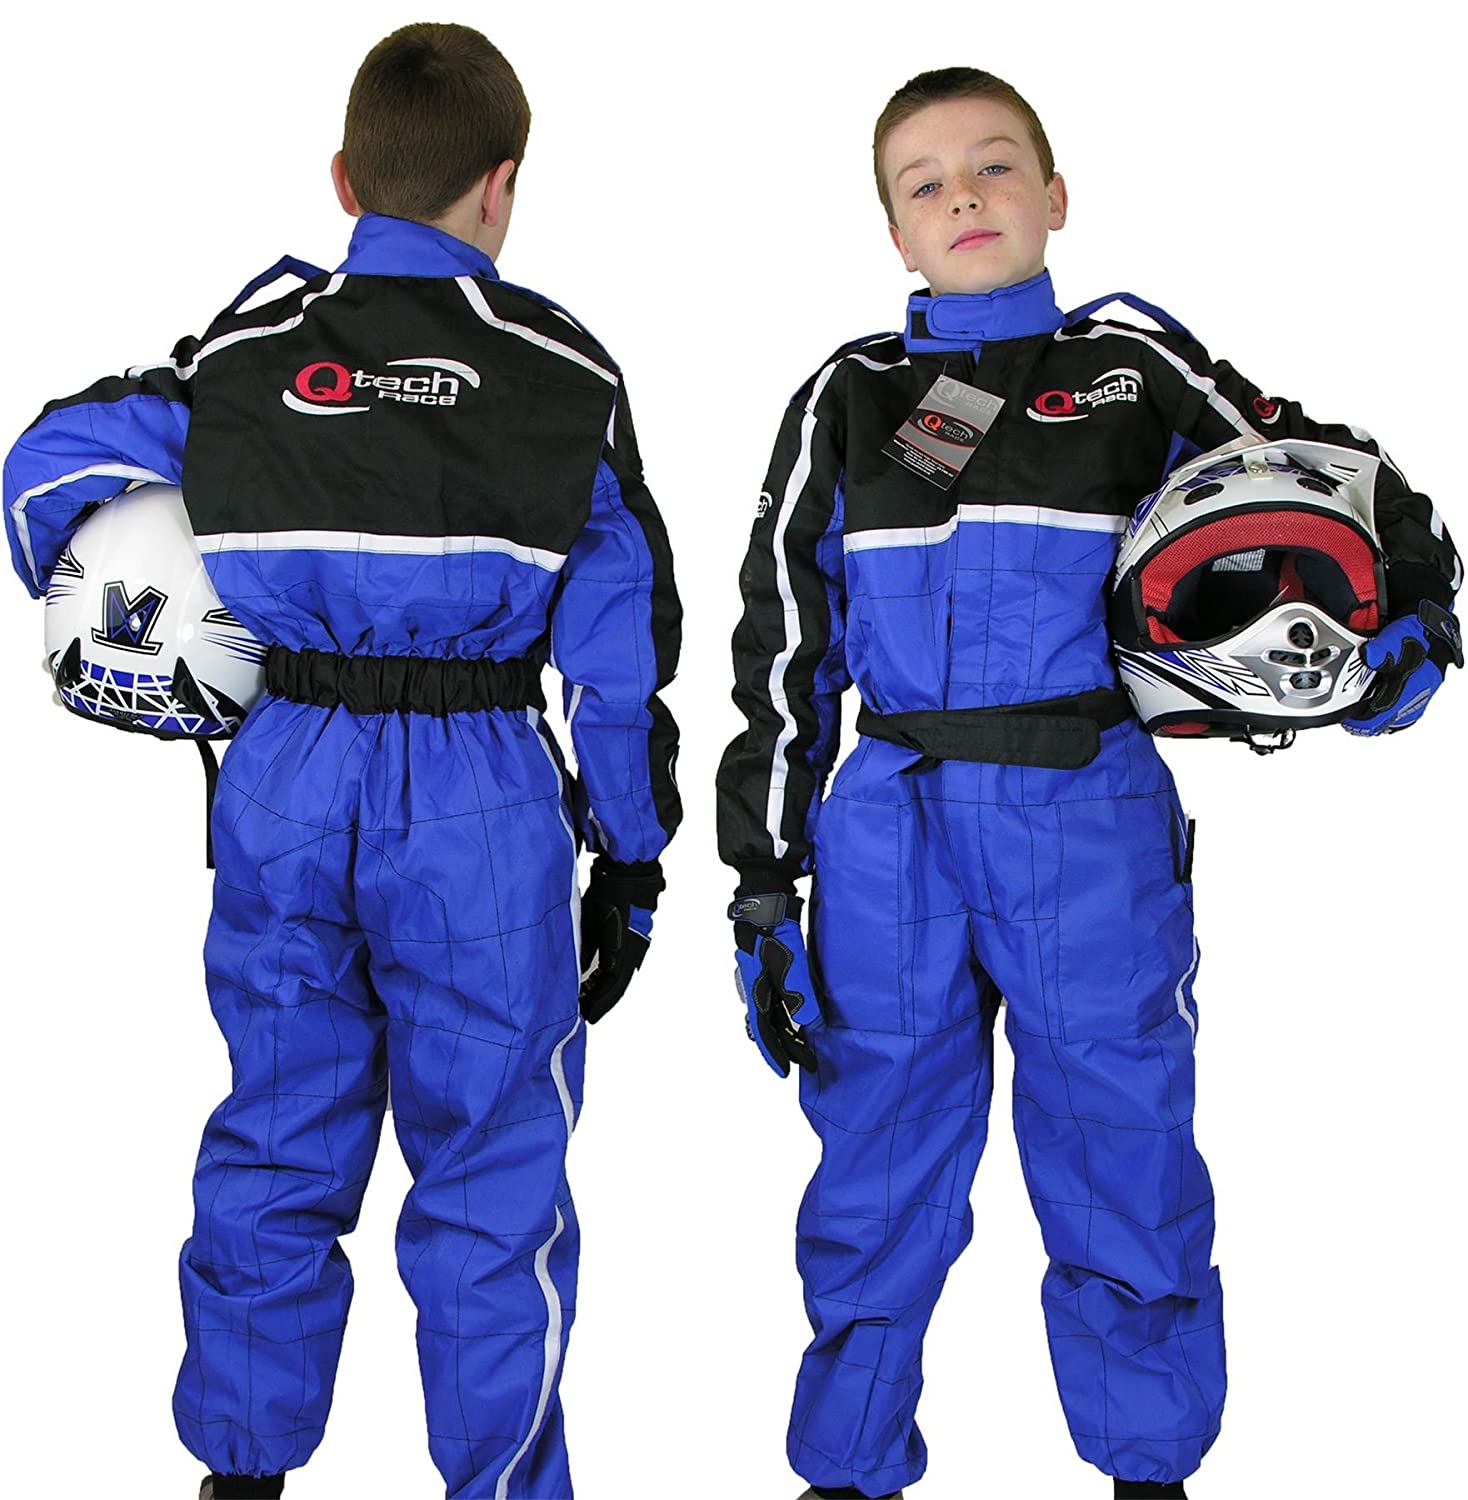 Qtech Children's Racing Suit Limited Edition for kids Motocross ATV Karting and General Usage with Ankle Cuffs, Small - Black